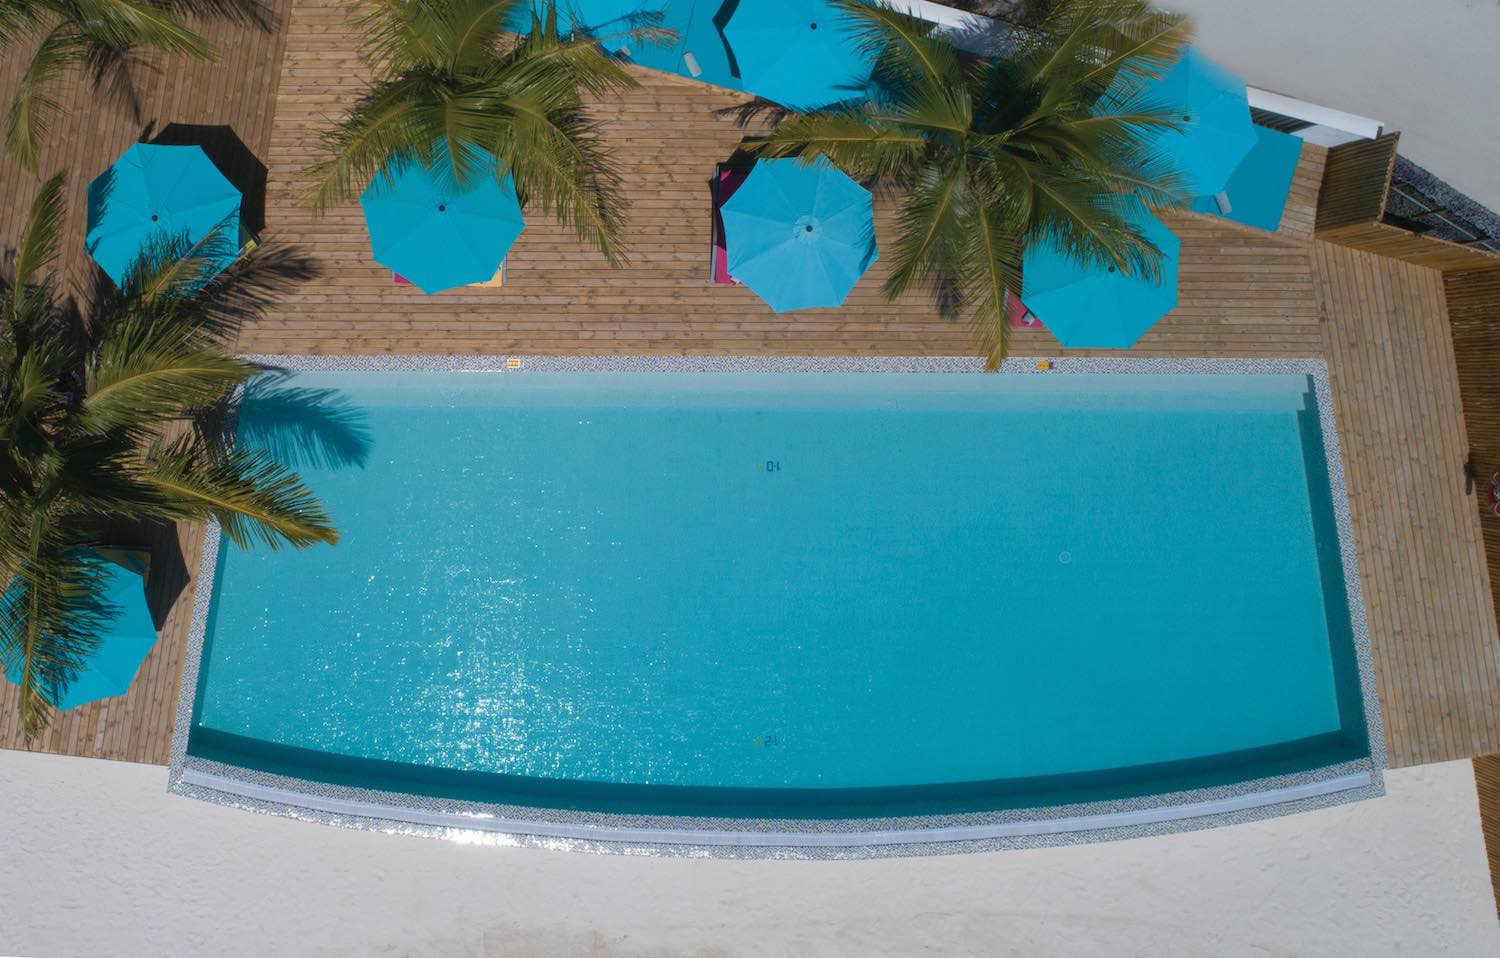 maldives-oblu-by-atmosphere-at-helengeli-adult-only-pool-9-holiday-honeymoon-vacation-invite-to-paradise.jpg